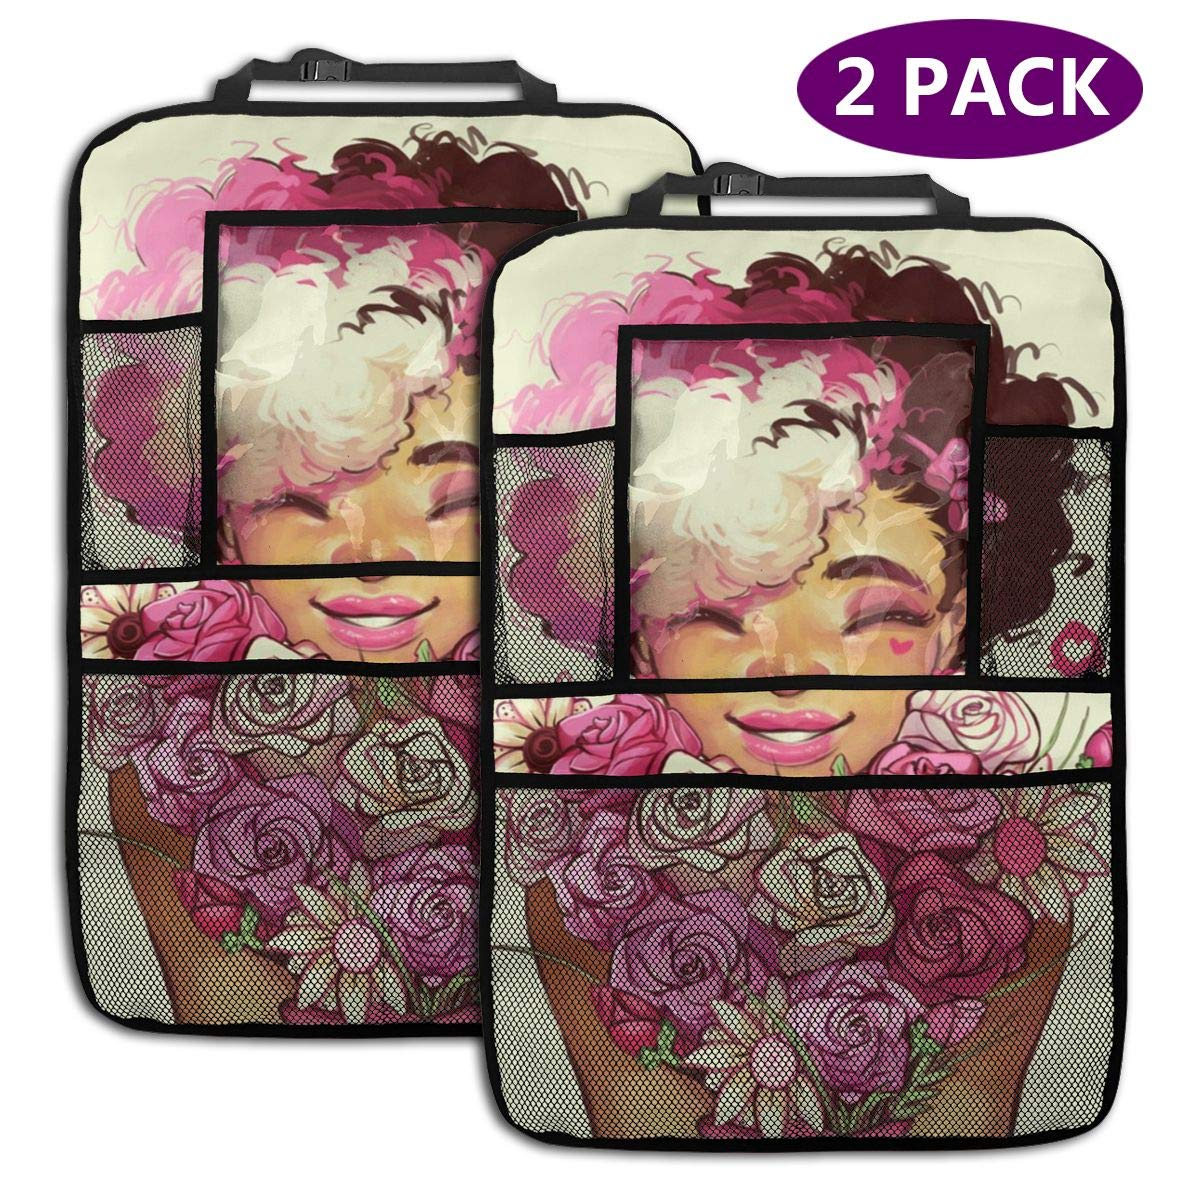 QF6FEICHAN Girl Receives Pink Roses Car Seat Back Protectors with Storage Pockets Kick Mats Accessories for Kids and Toddlers by QF6FEICHAN